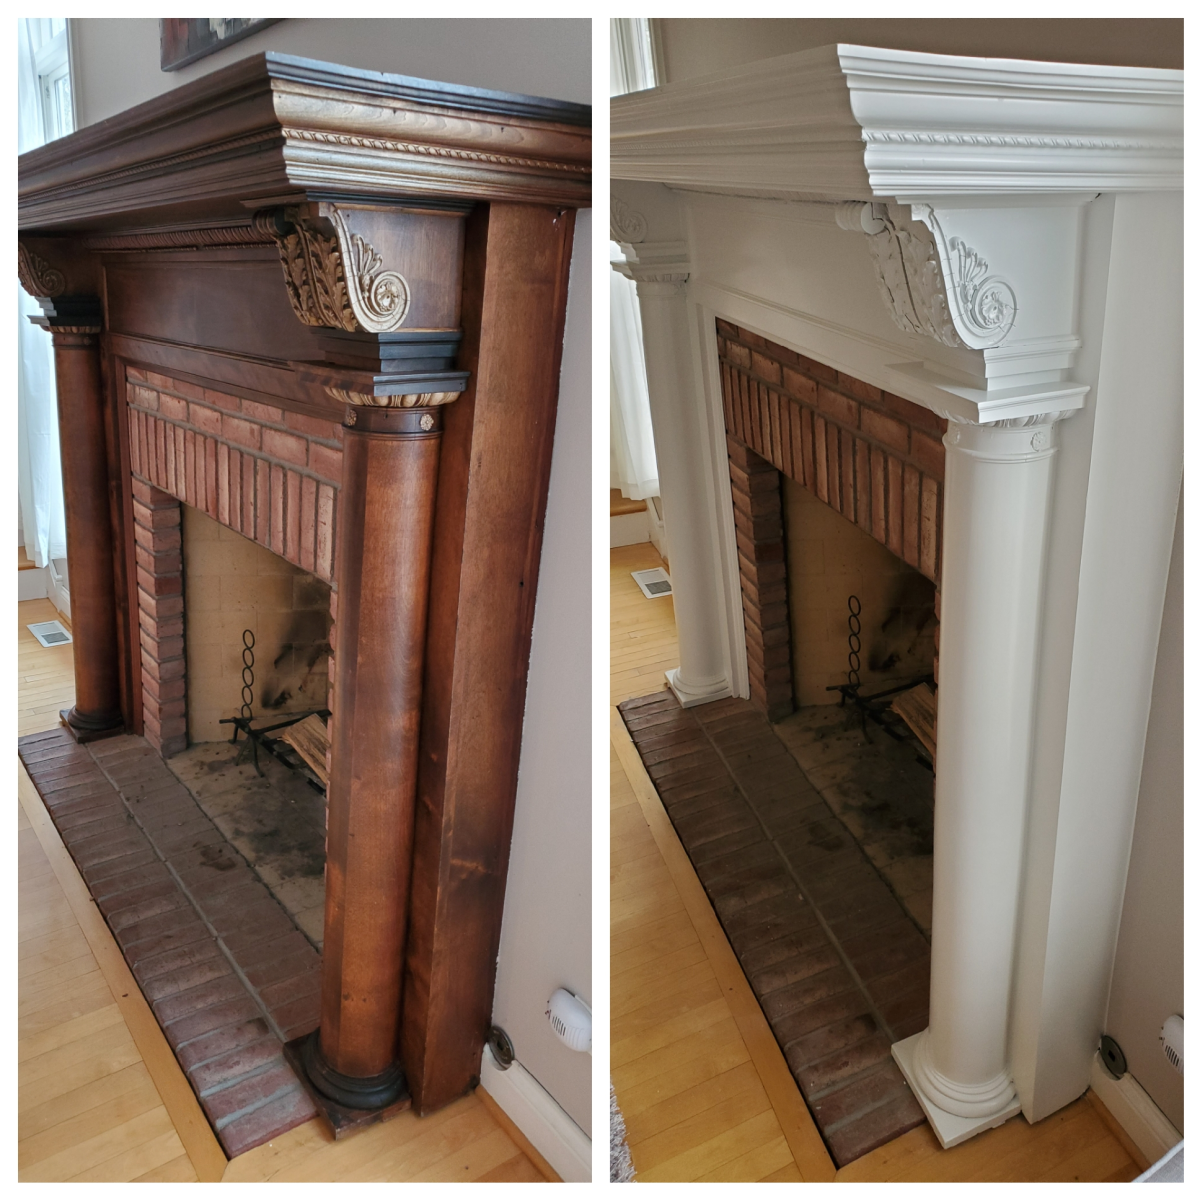 An antique fireplace mantel I spray painted white.